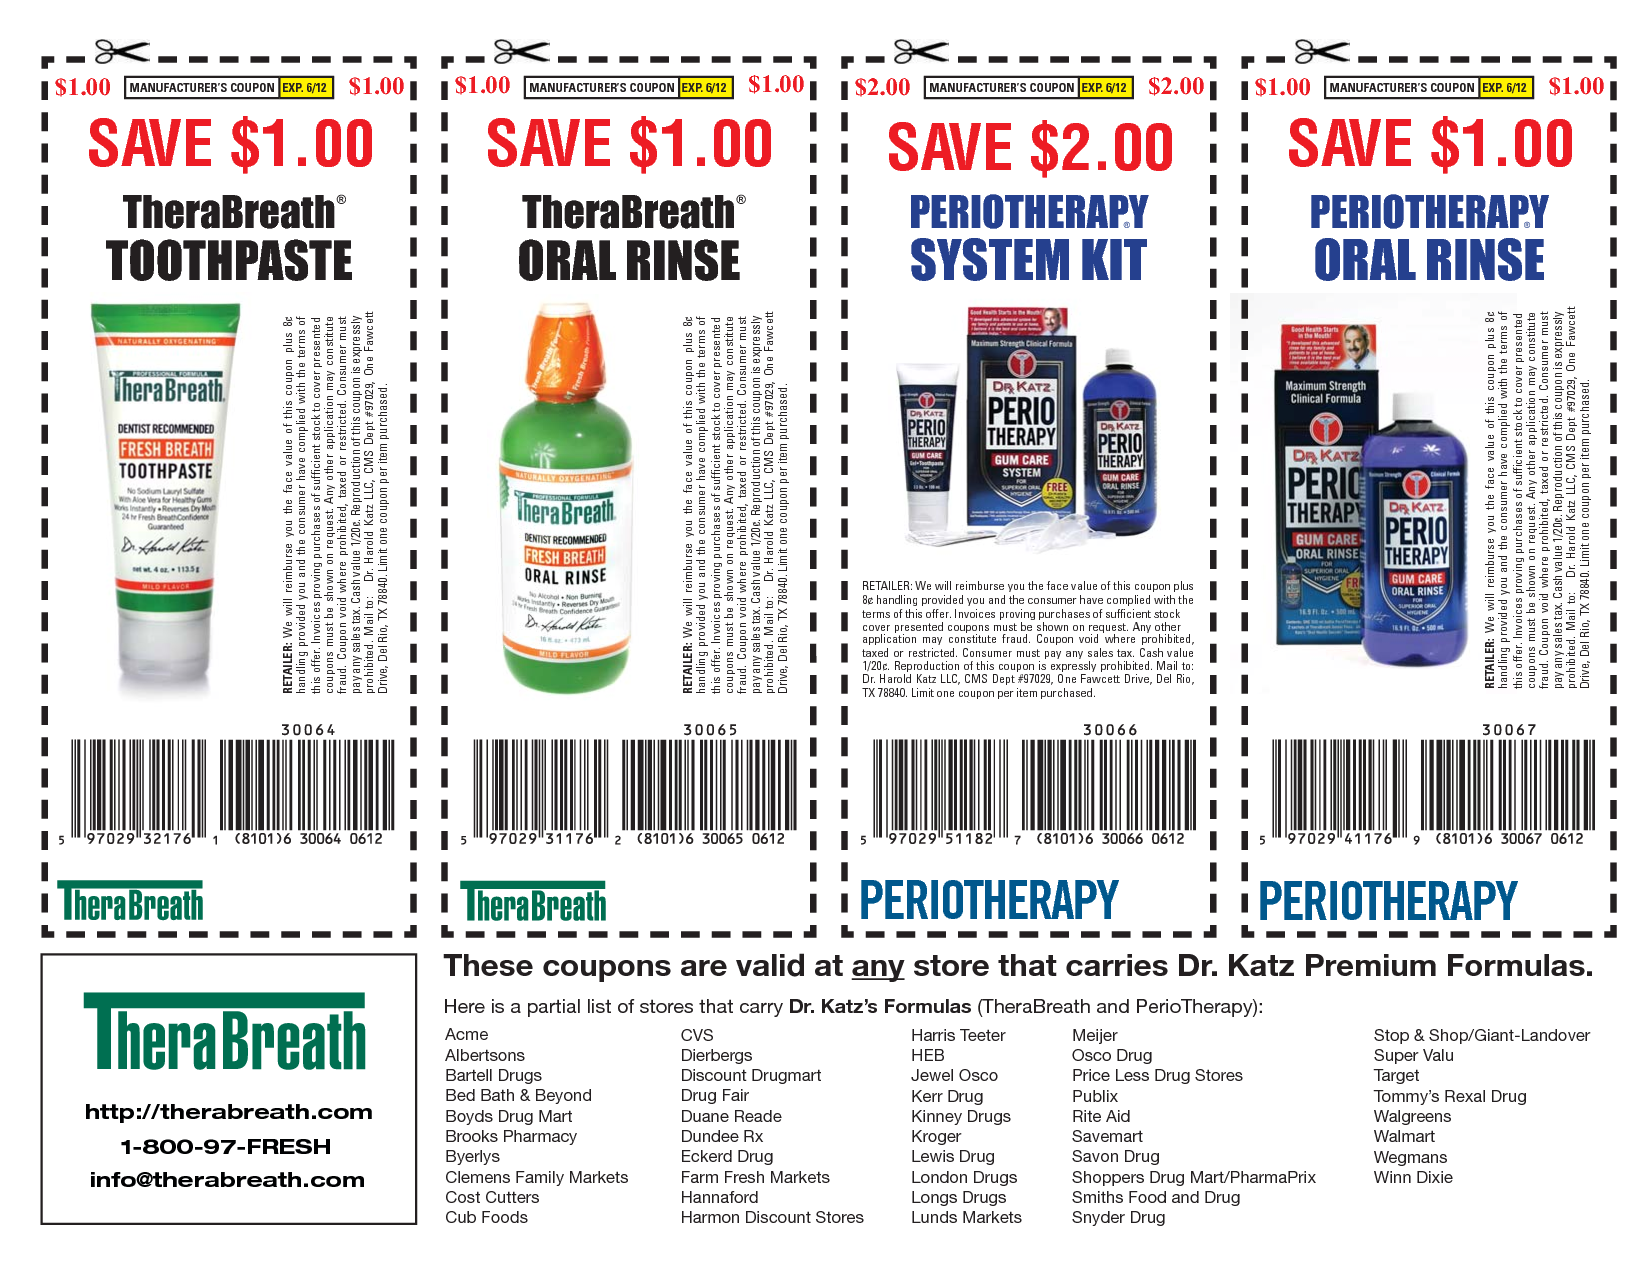 photo about Therabreath Coupons Printable identified as therabreath Coupon Printable Software package for Duane Reade